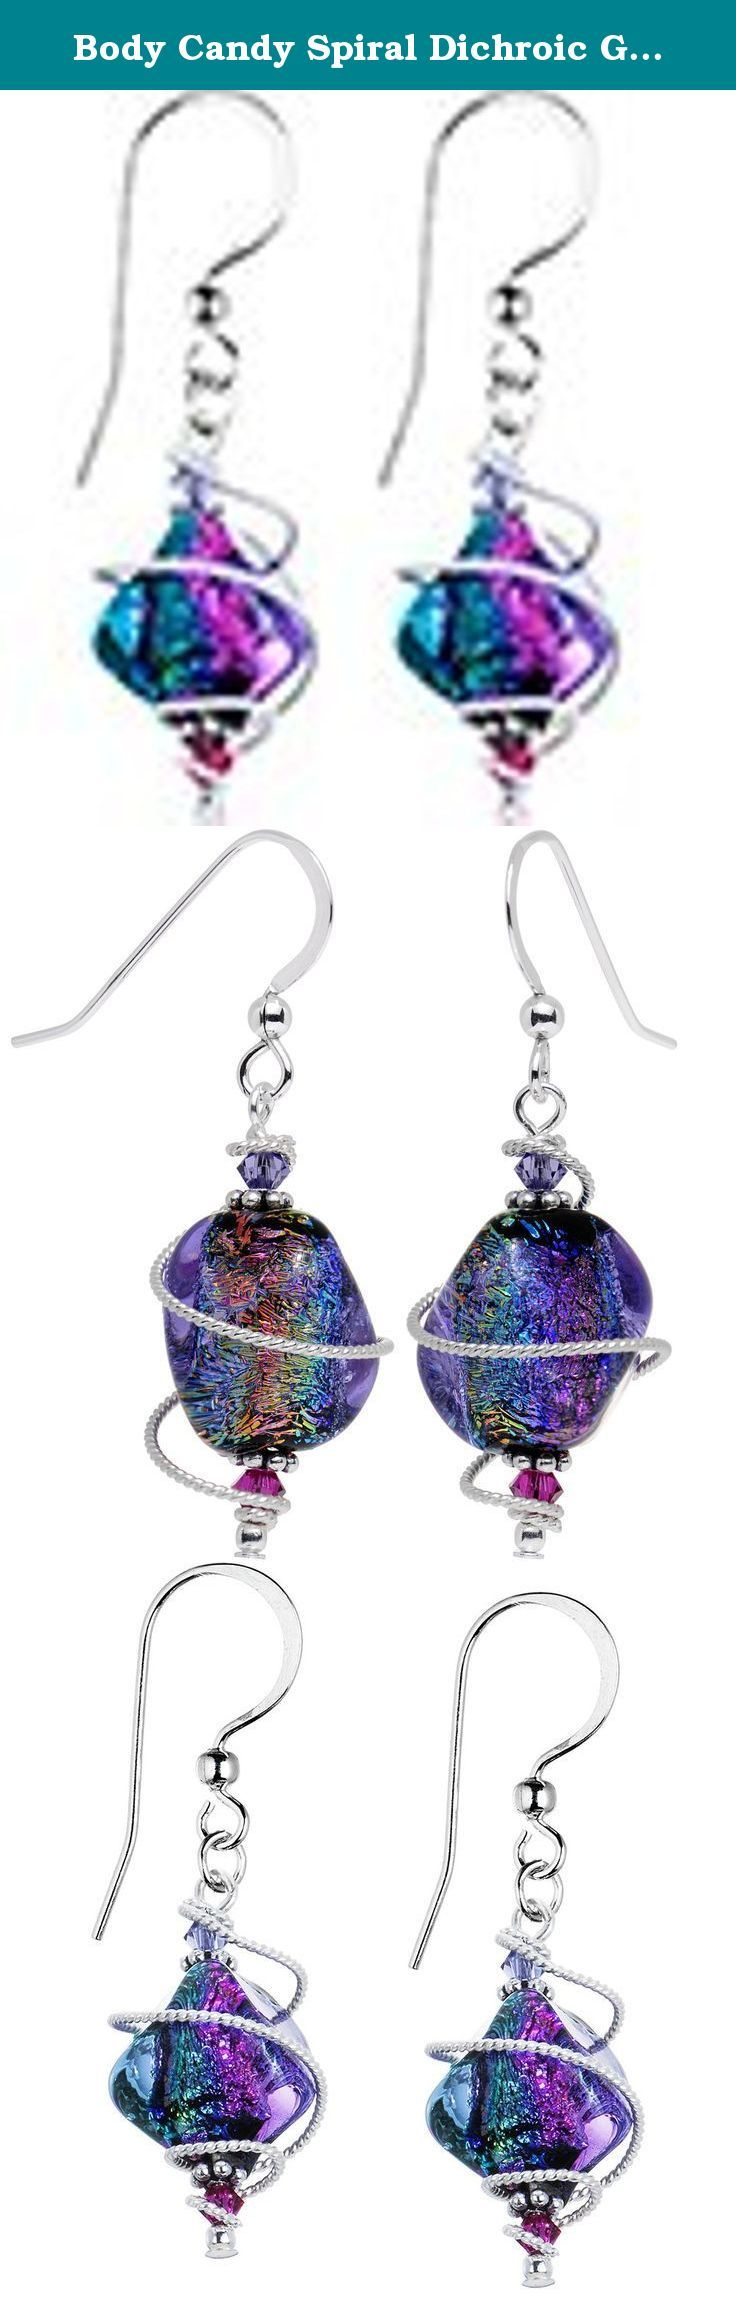 "Body Candy Spiral Dichroic Glass Dangle Earrings Created with Swarovski Crystals. Perk up any outfit with these swirl dichroic glass dangle earrings featuring a mesmerizing combination of elements and colors. Measuring in at 1.5"" in length, this pair fishhook earwire pierced earrings are sure to fascinate and enamor anyone you encounter with vibrant, sparkling hues of cool tones. These fashion earrings for women are hand assembled by our talented jewelry artisans in the USA. Each pair of..."